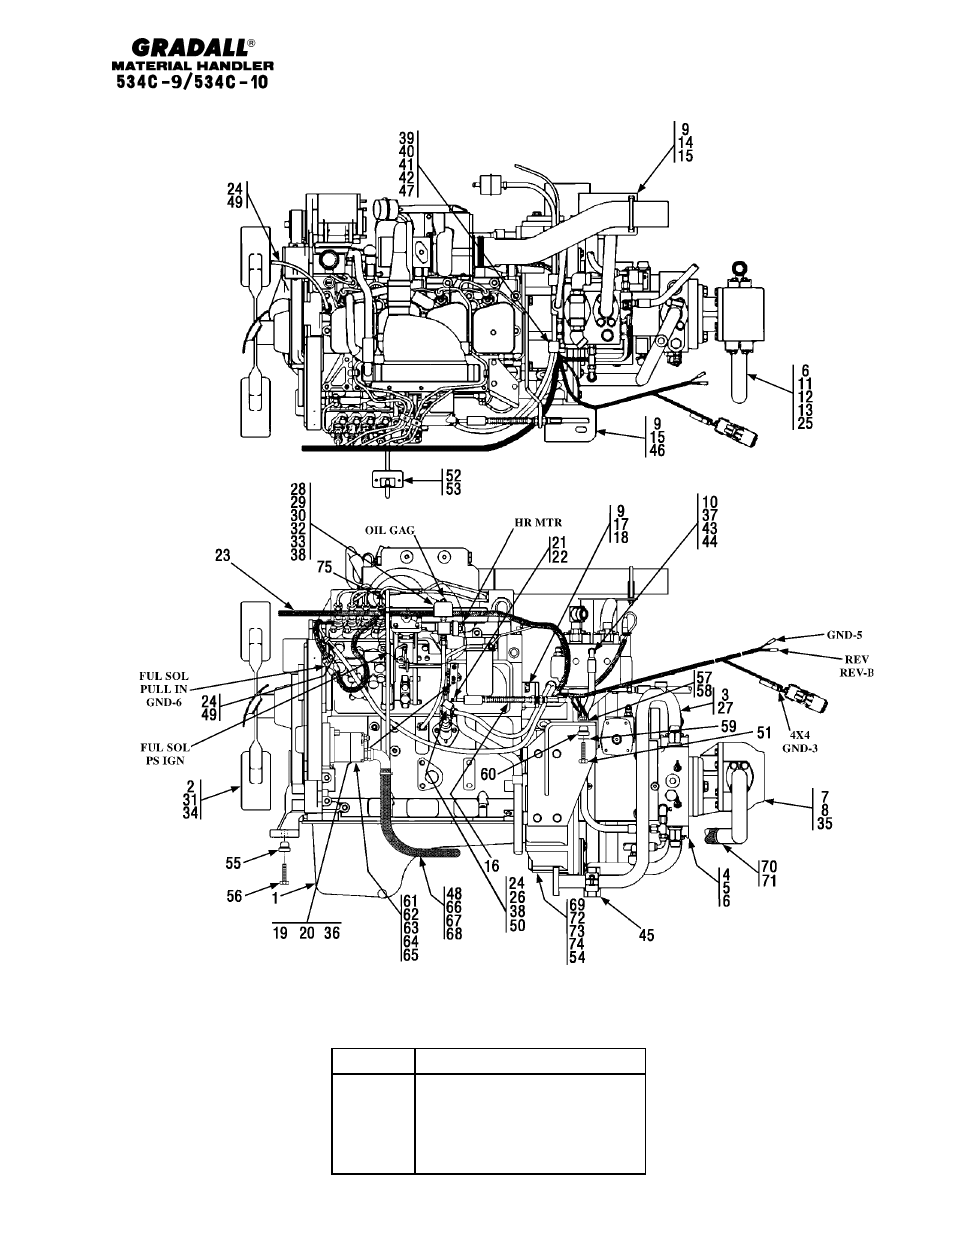 Cummins 3 9 Engine Diagram Modern Design Of Wiring Pull Start Library Rh 47 Skriptoase De 59 Diagrams